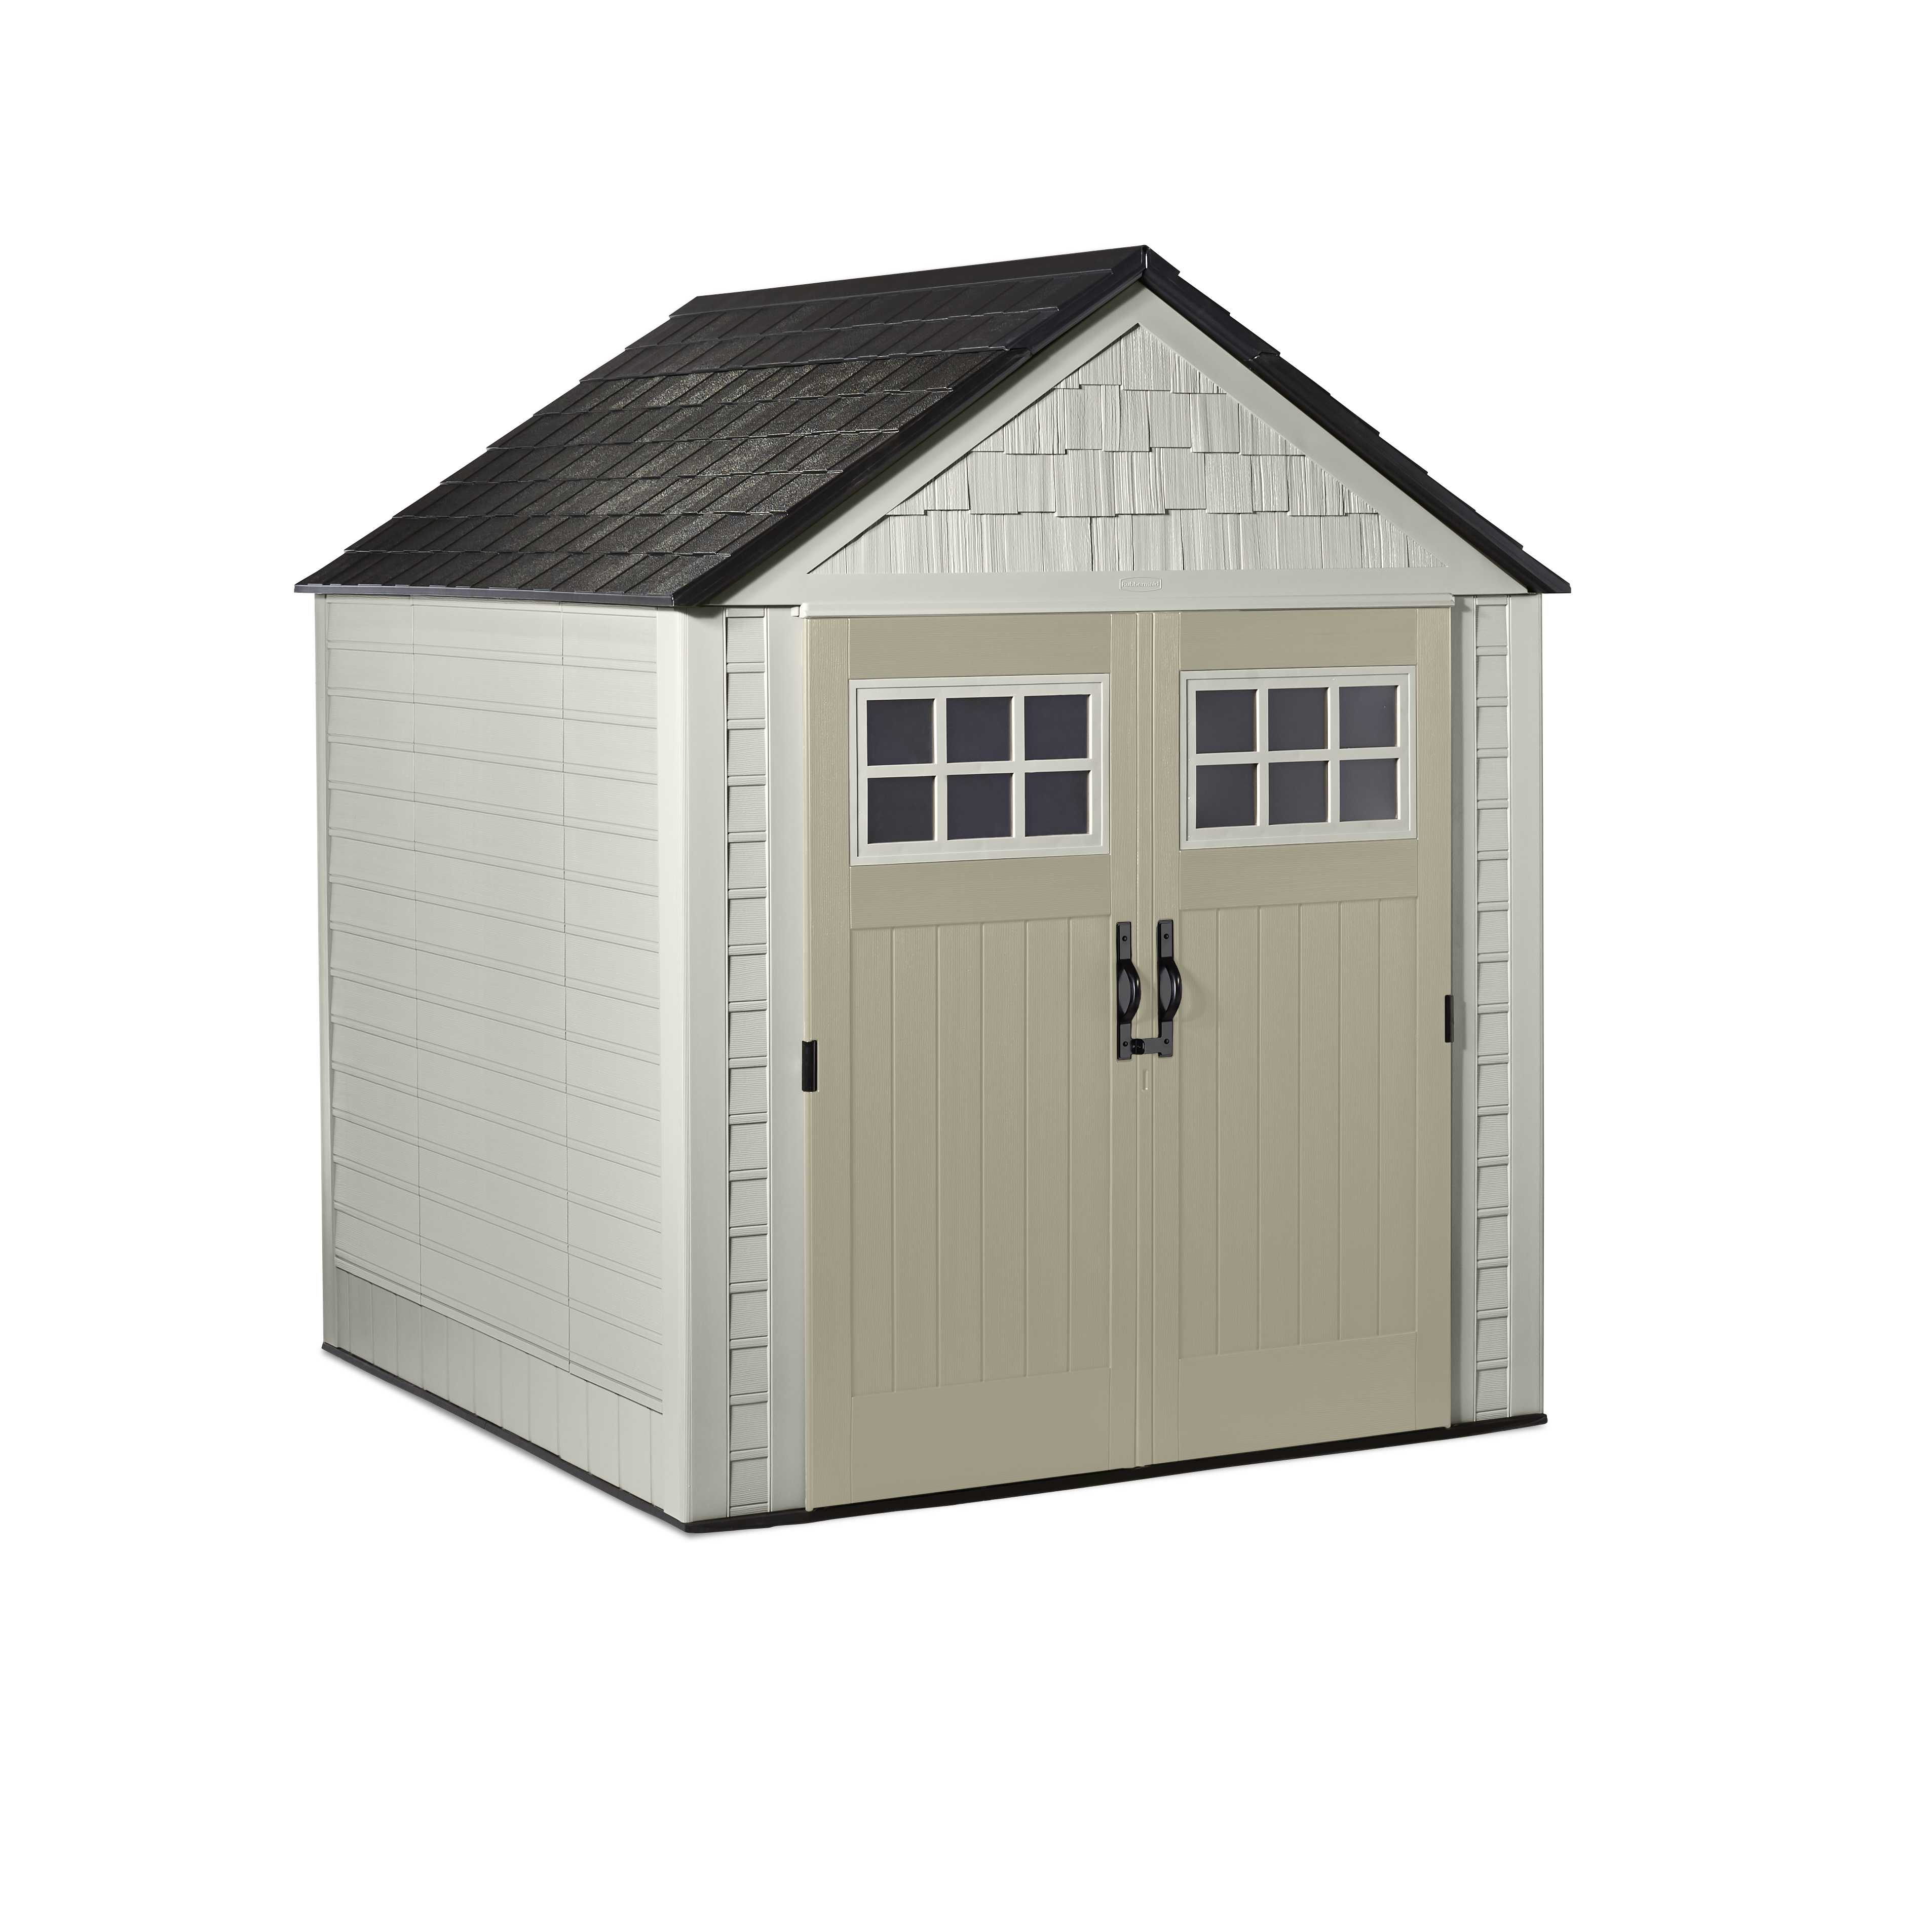 Rubbermaid 7 x 7 ft Large Vertical Storage Shed, Sandstone & Onyx by Rubbermaid Home